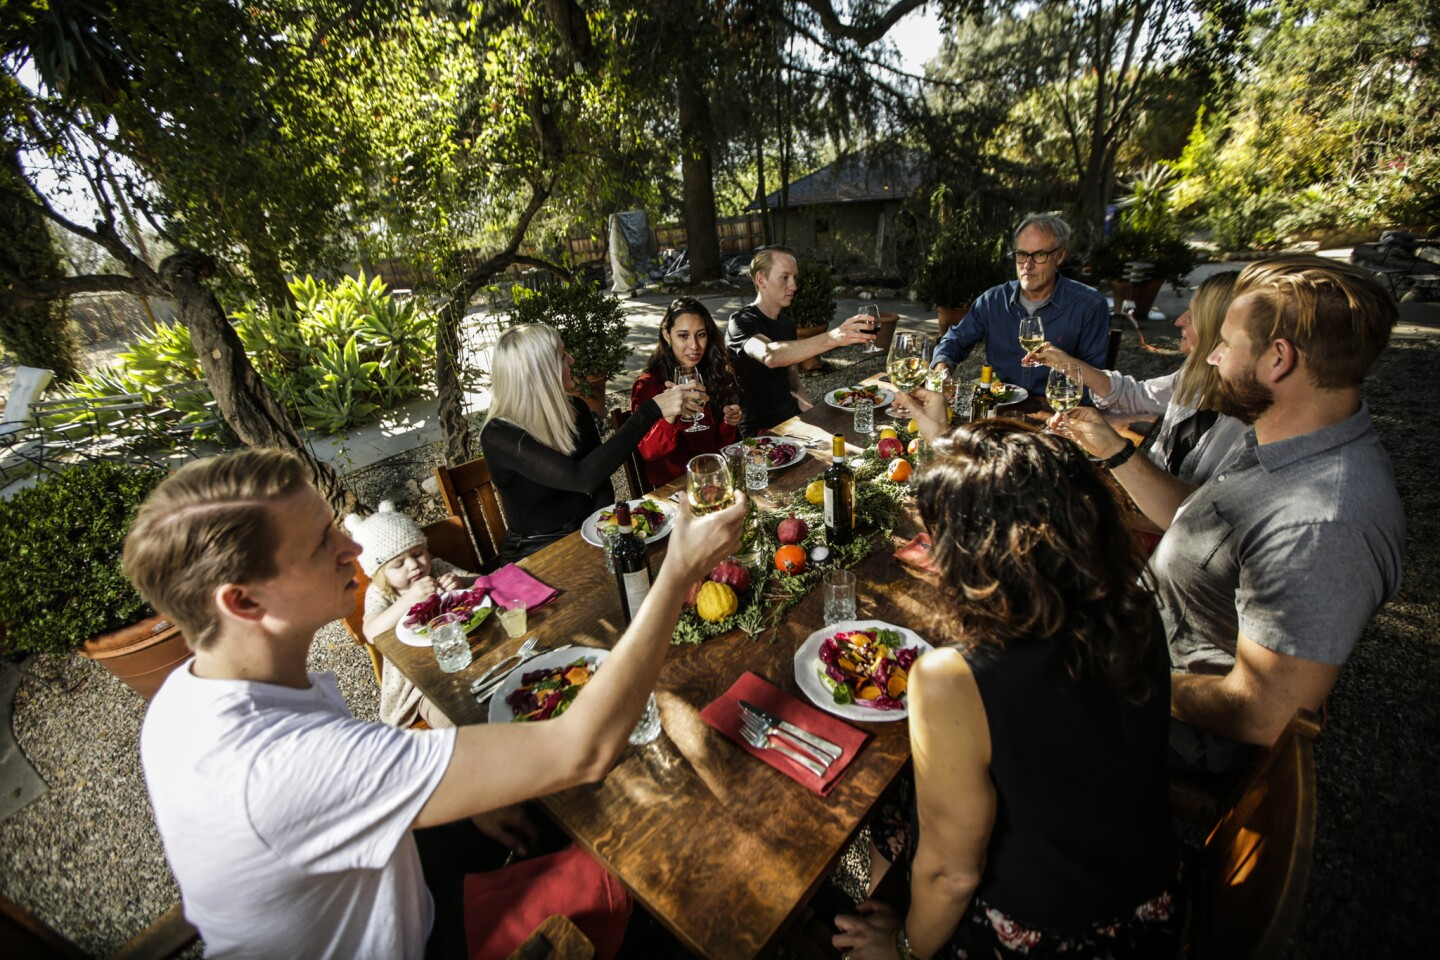 Andrea Crawford and her family partake in the holiday meal prepared at her home. The courses included rosemary steak skewers, radicchio salad, greens-stuffed flatbreads, kabocha squash and Meyer lemon tart.